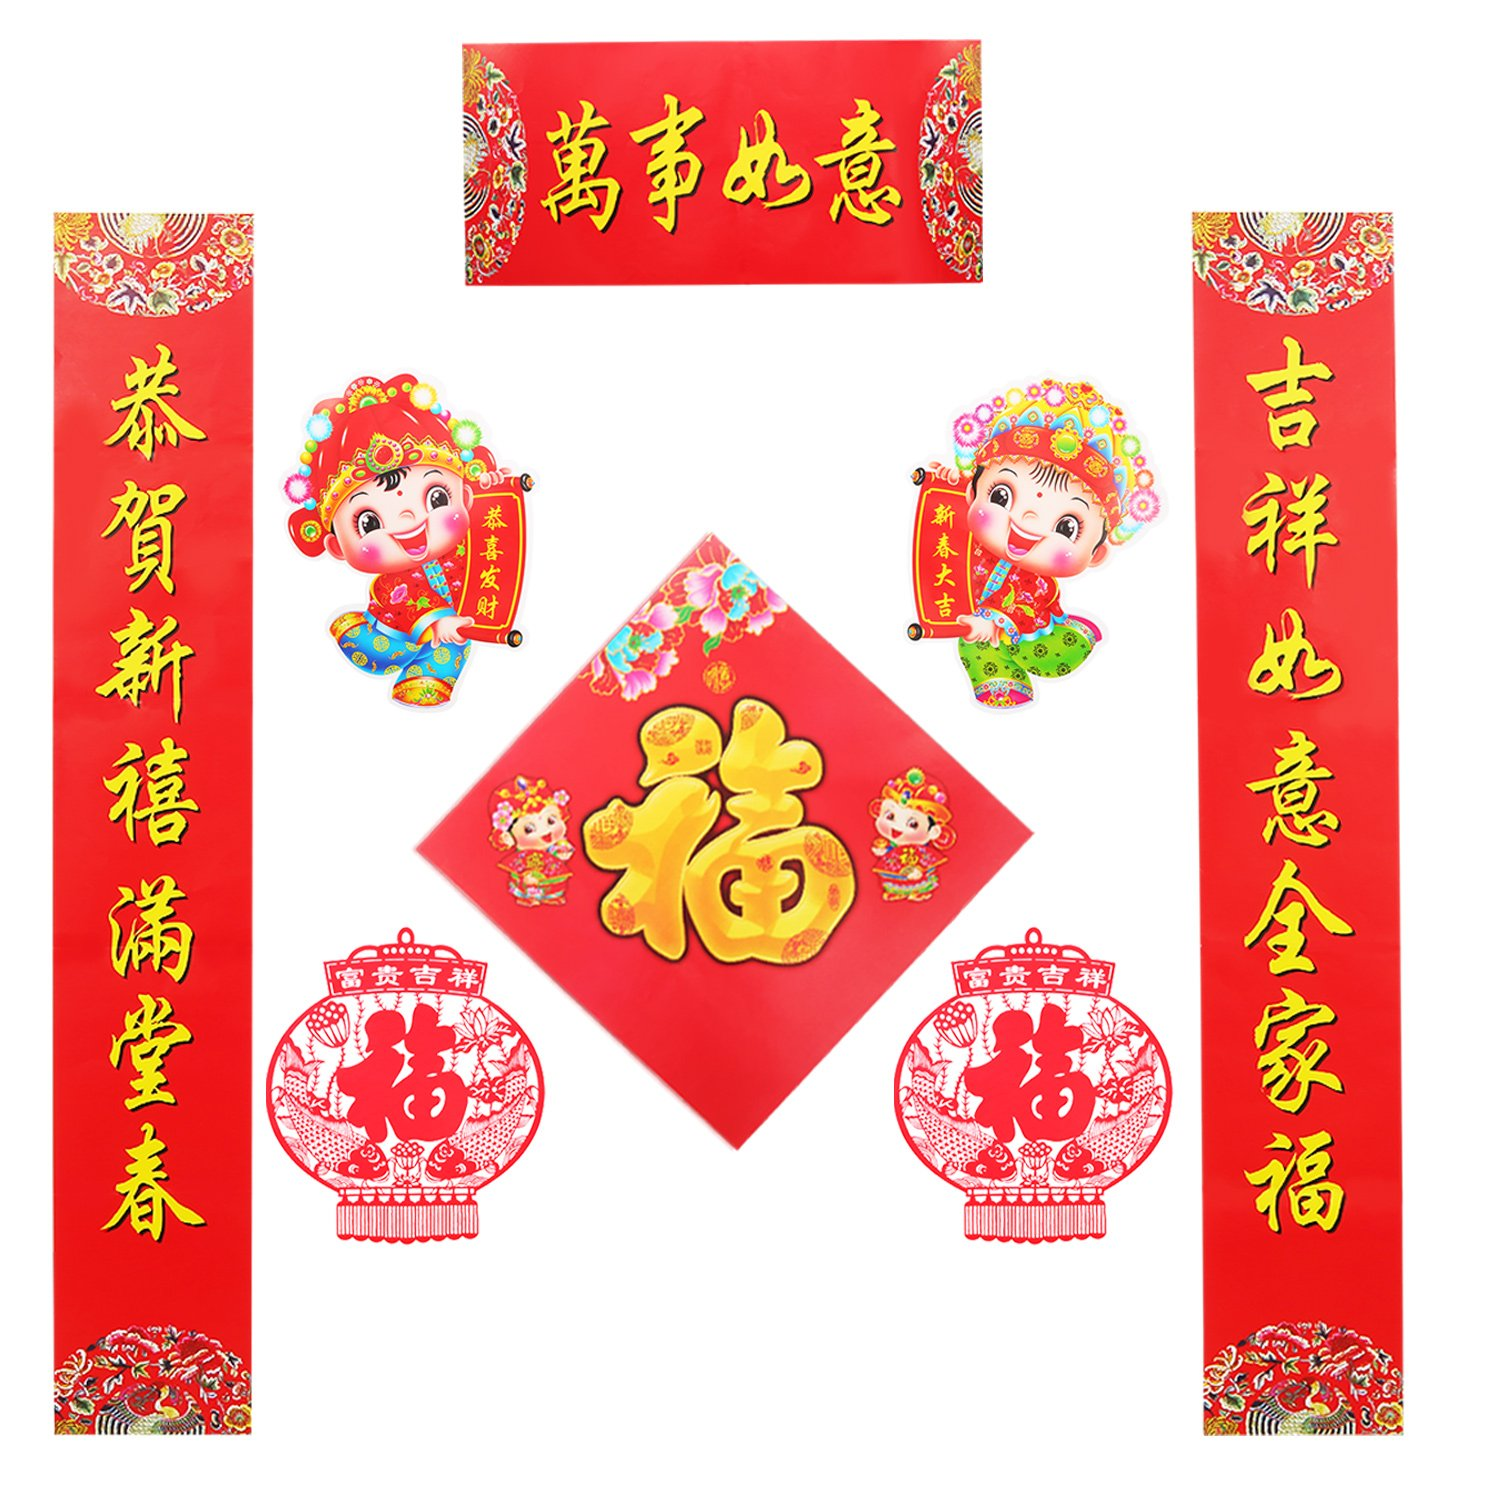 Mtlee Chinese Couplet Decorative Gift Kit for 2019 Chinese New Year Spring Festival, Includes Chun Lian, Fu Characters, Chinese Fu Stickers, Door Stickers, Red Envelopes, FU Bag (Set of 27 Pieces) by Mtlee (Image #2)